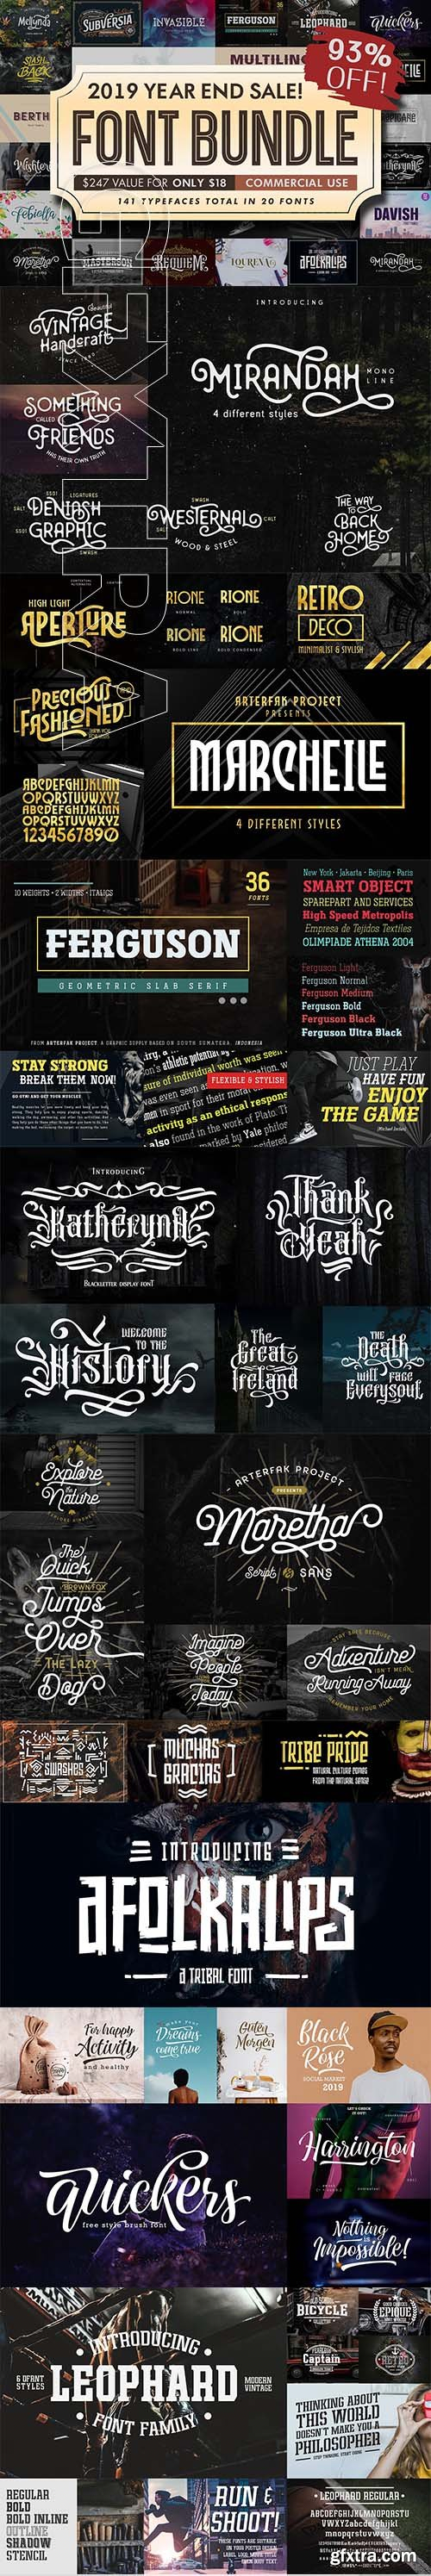 CreativeMarket - Font Bundle 2019 4245088